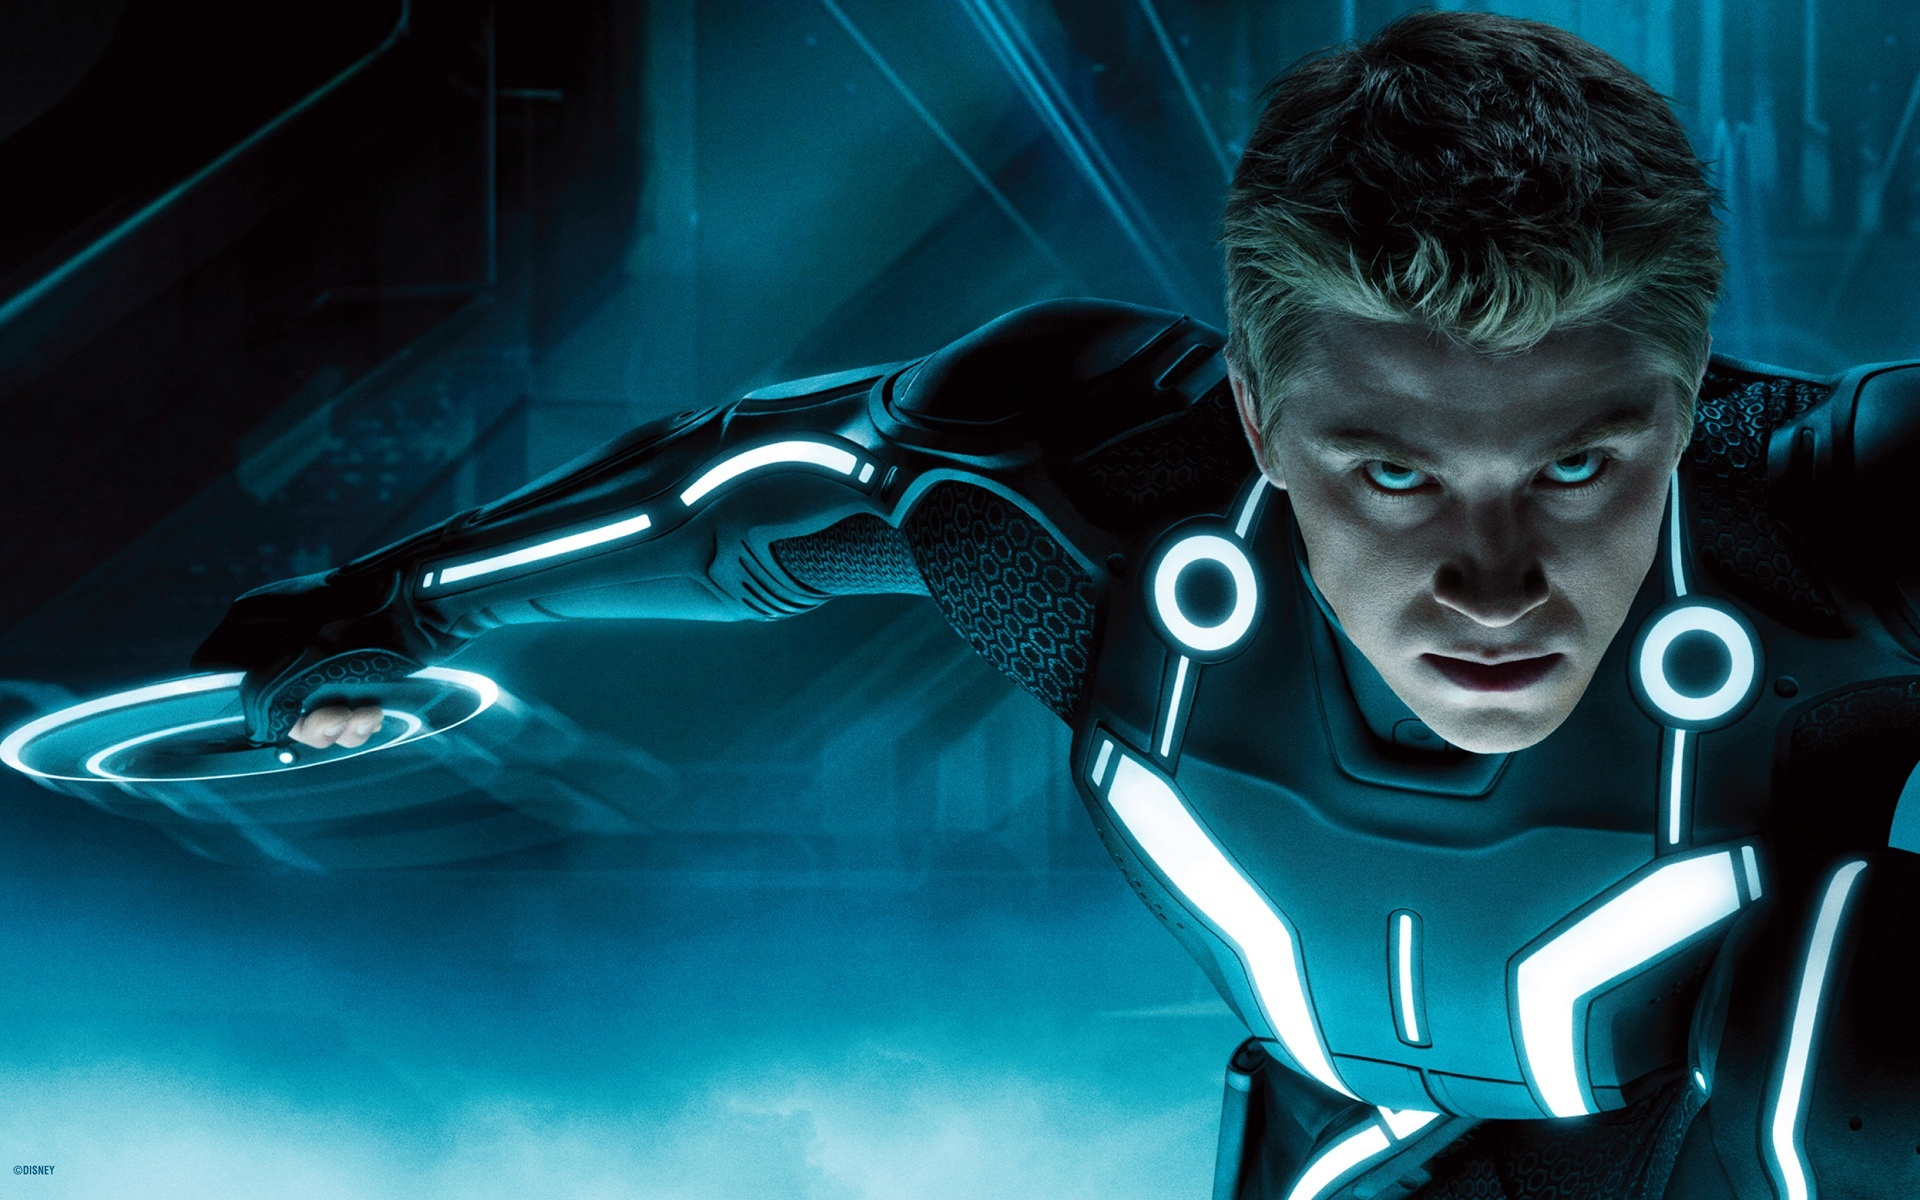 Tron-Legacy-Sam-Ready-to-Battle-Desktop-Wallpaper